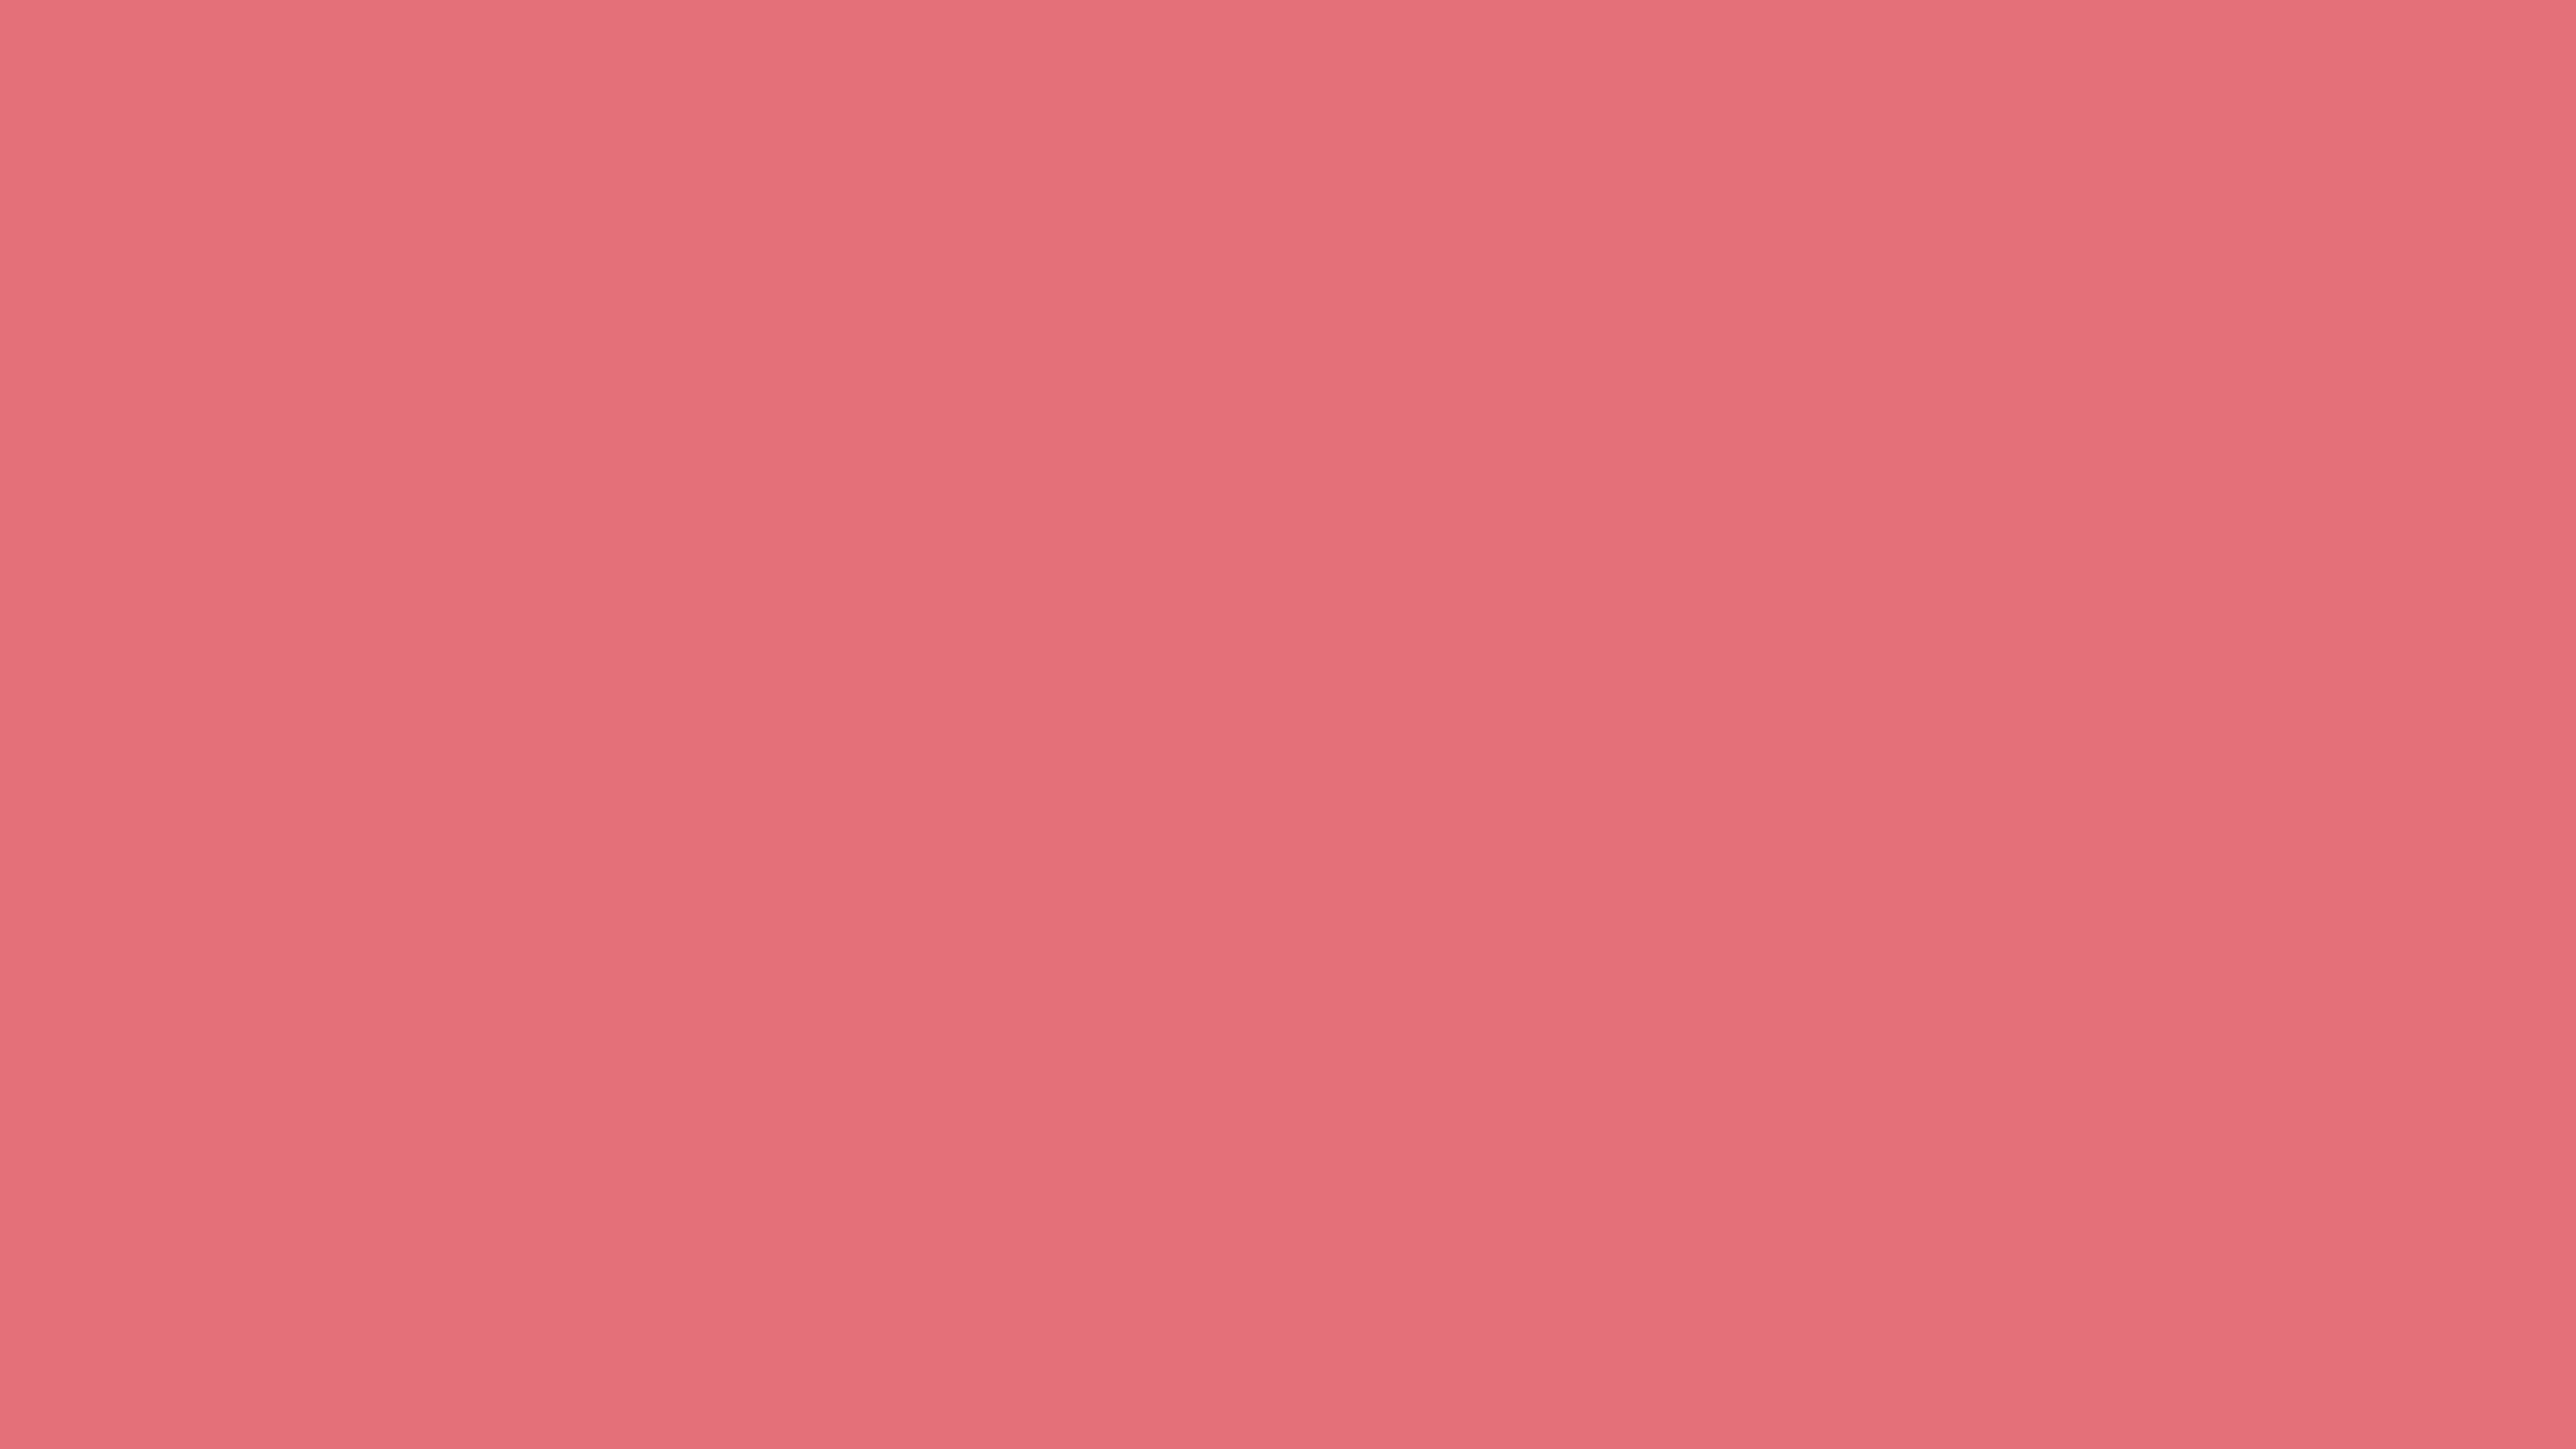 3840x2160 Candy Pink Solid Color Background